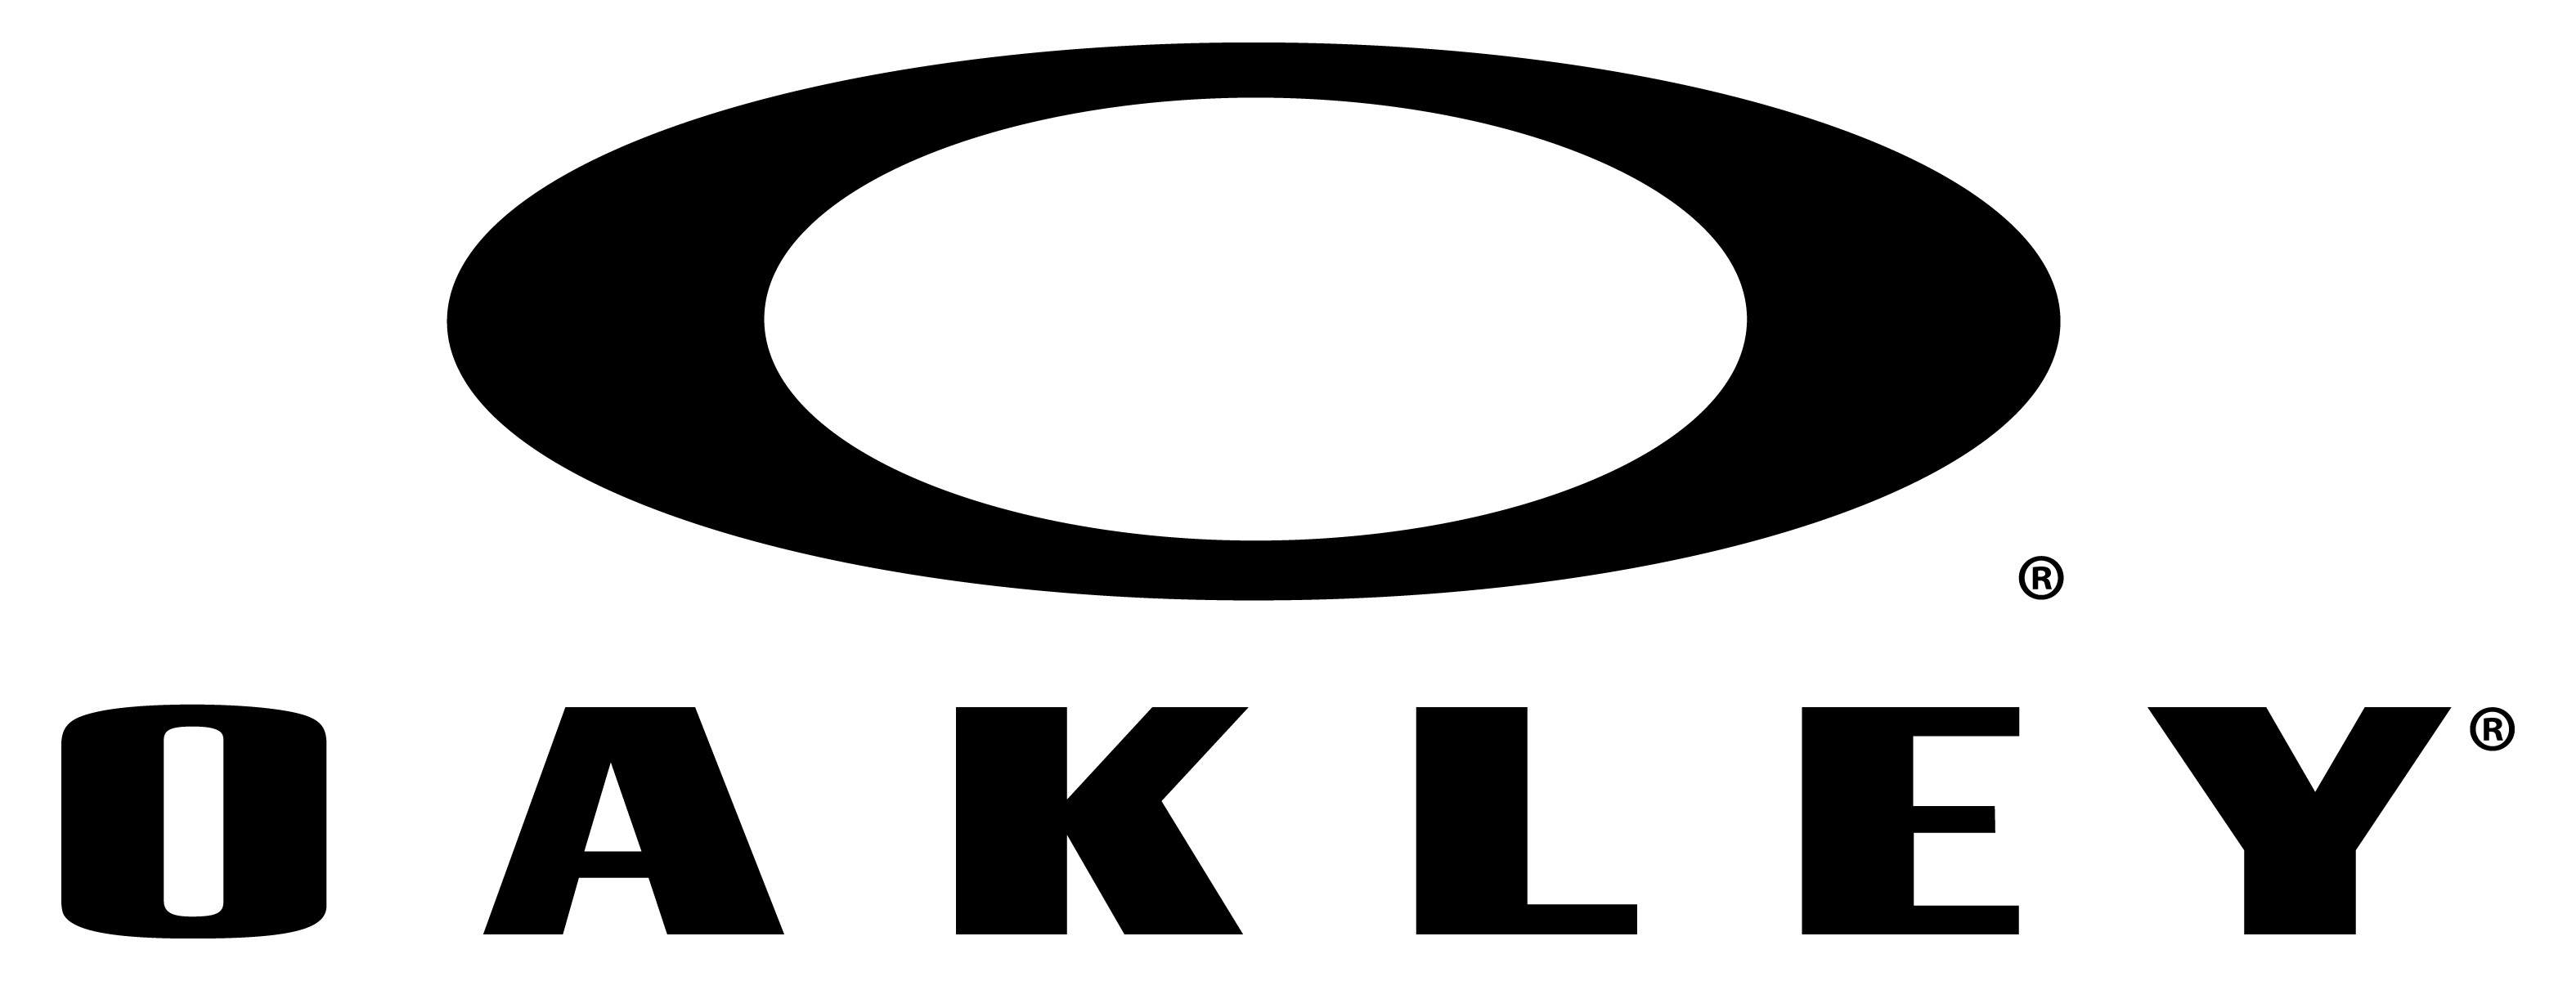 OAKLEY_Ellipse_LOGOTYPE_Black 032013